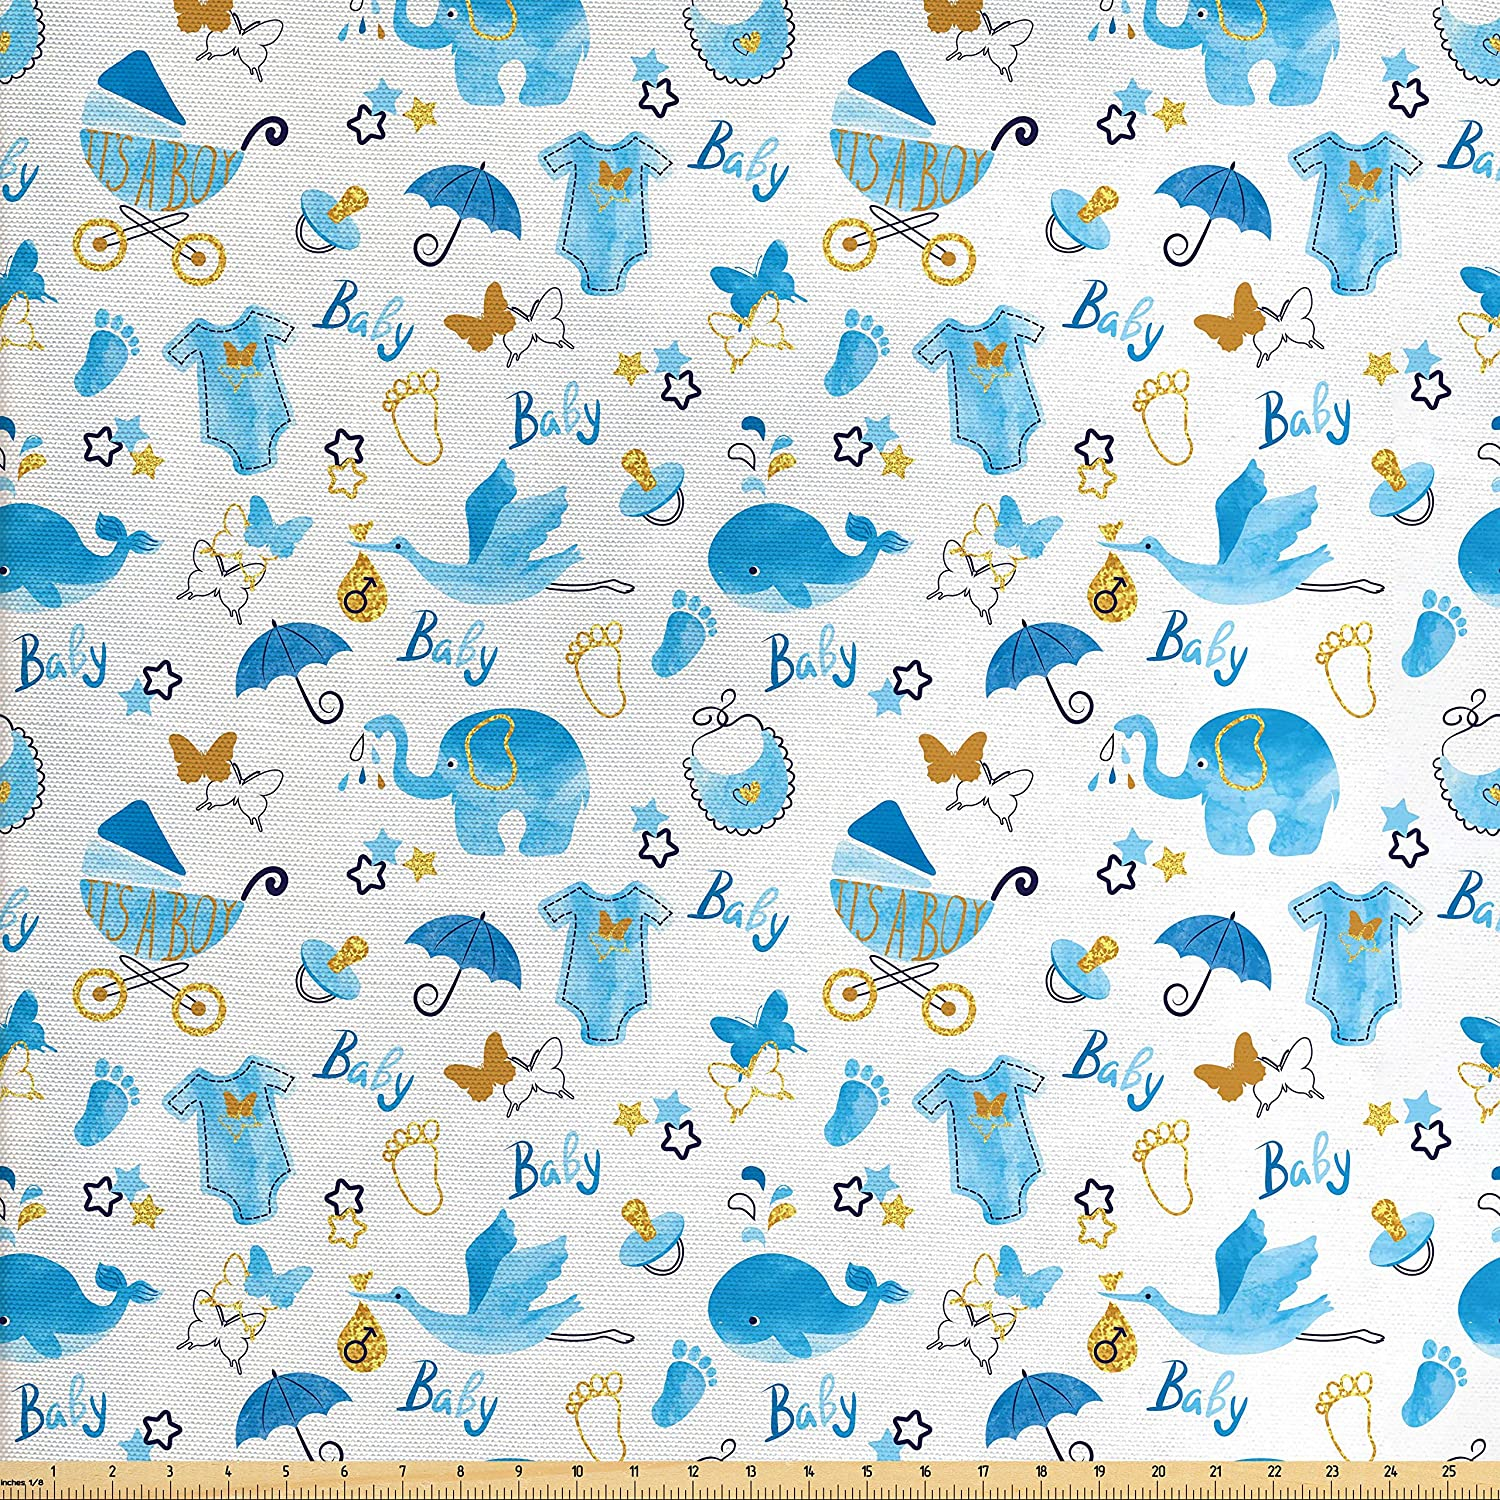 Ambesonne Baby Fabric by The Yard, Its a Boy Stork Carrying a Baby Elephants Clothes Butterflies Print, Decorative Fabric for Upholstery and Home Accents, Blue Amber Black